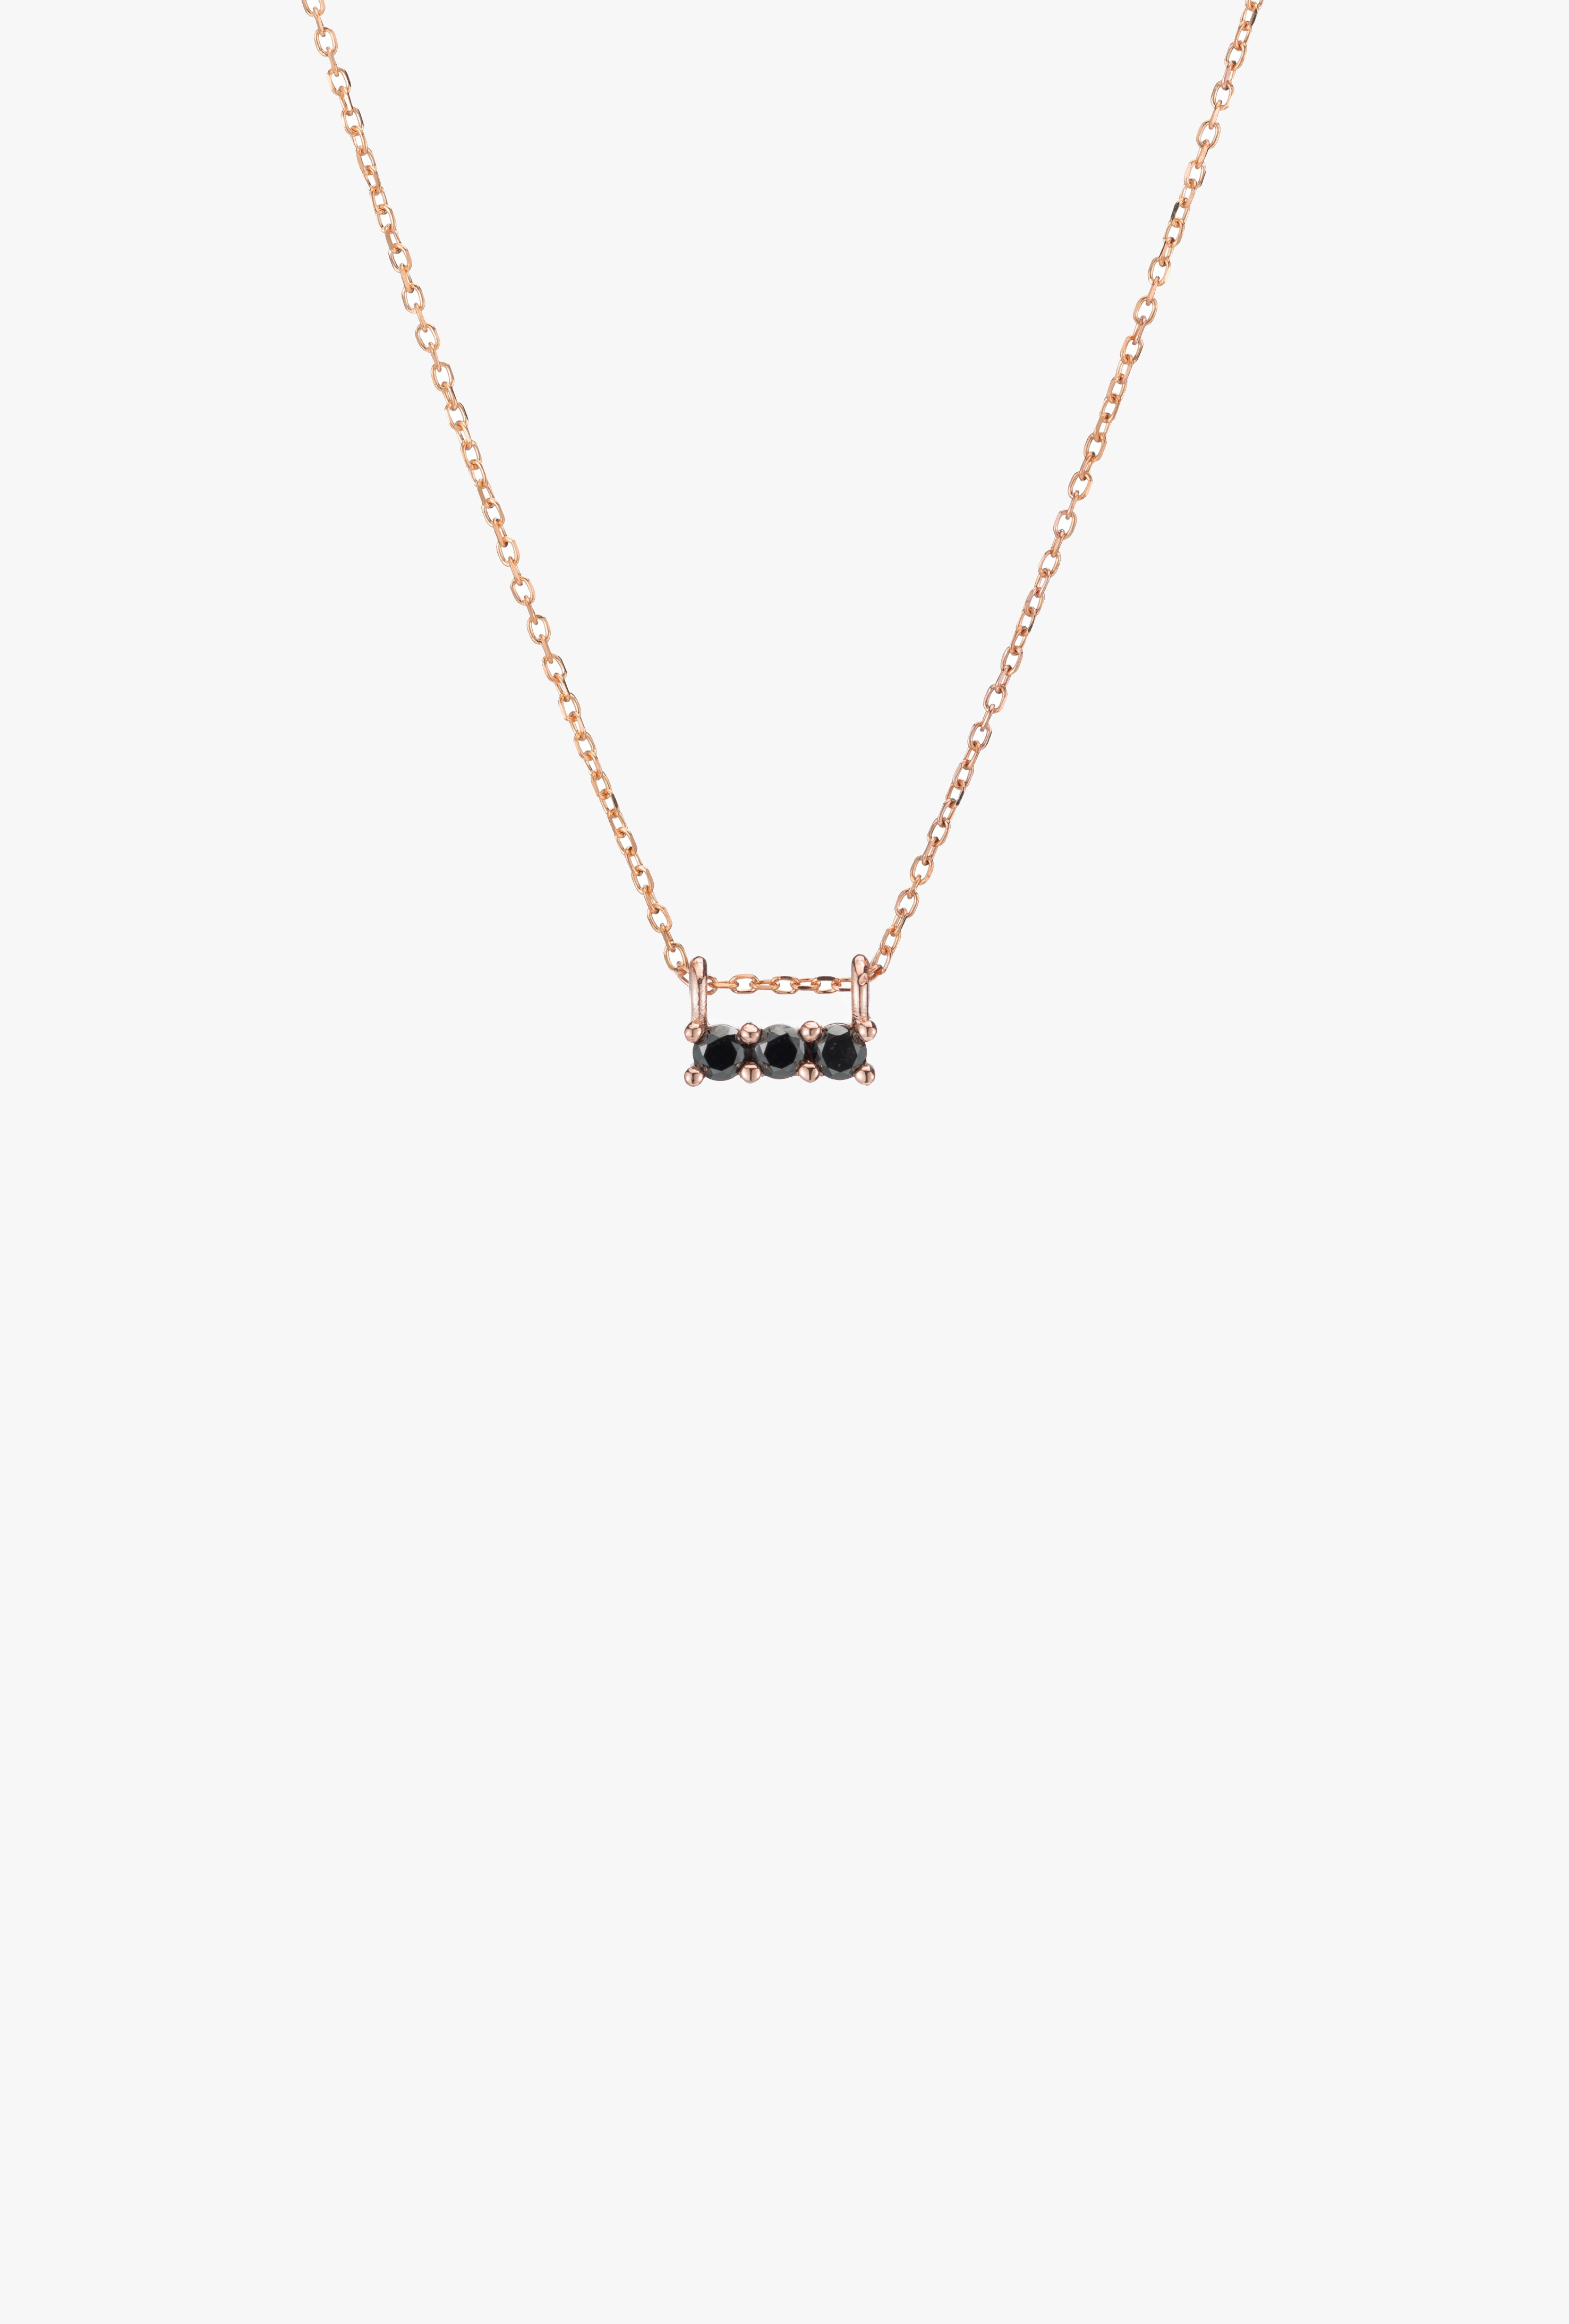 3S Black Diamond Necklace